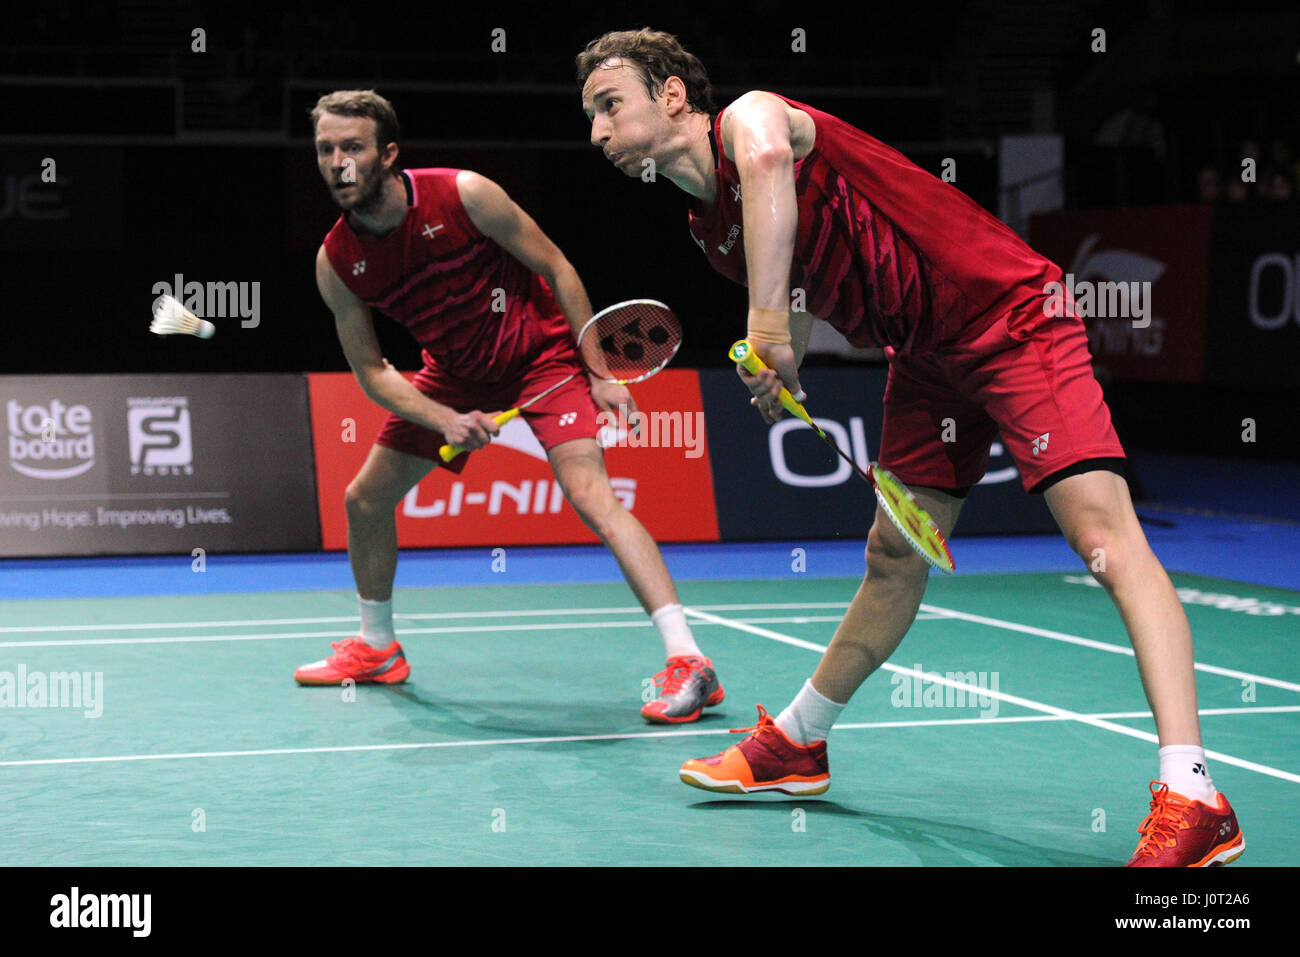 Singapore 16th Apr 2017 Denmark s Mathias Boe and Carsten